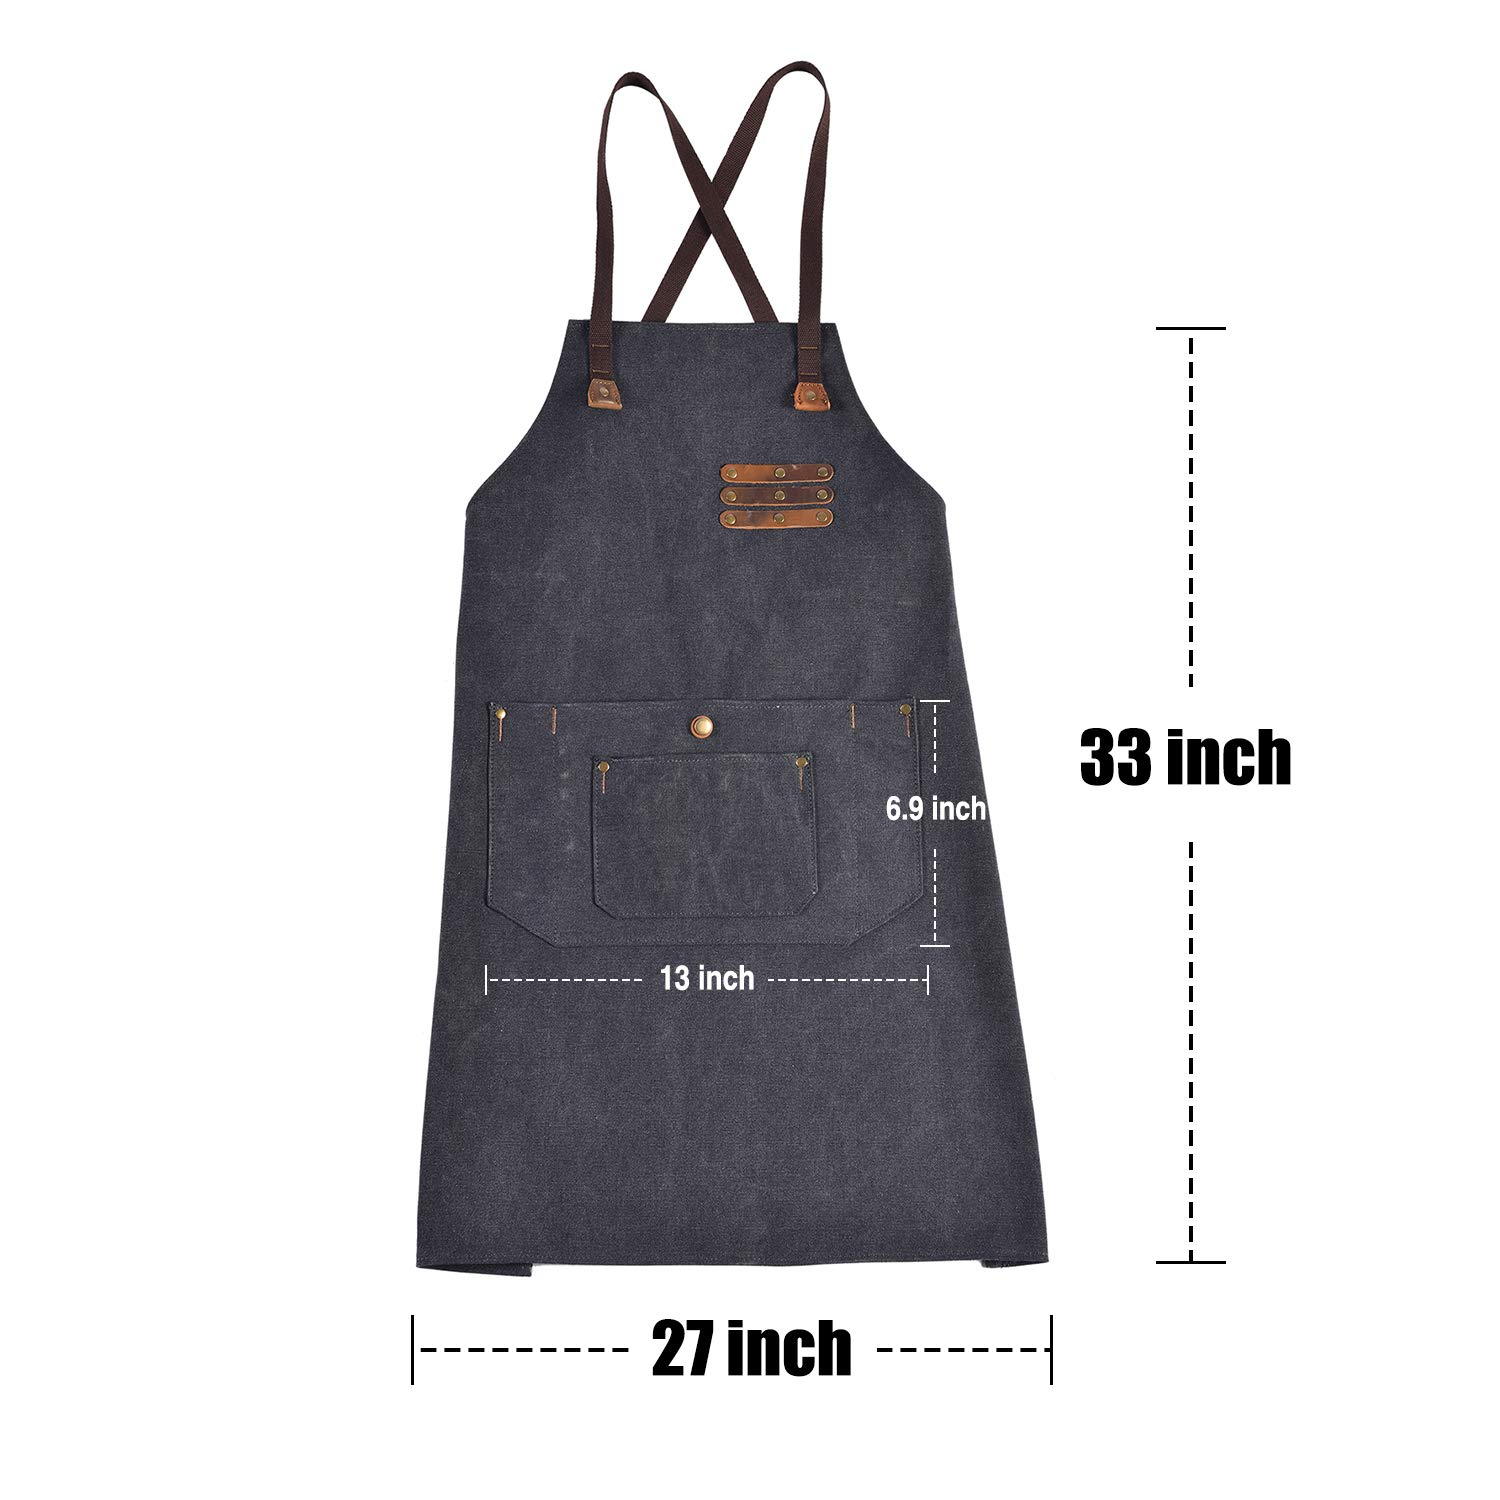 Canvas Shop Apron for Men & Women  Heavy Duty Work Apron with Pocket & Cross-Back Straps   Adjustable Tool Apron M to XXL(Grey) by ruizhixuan (Image #7)